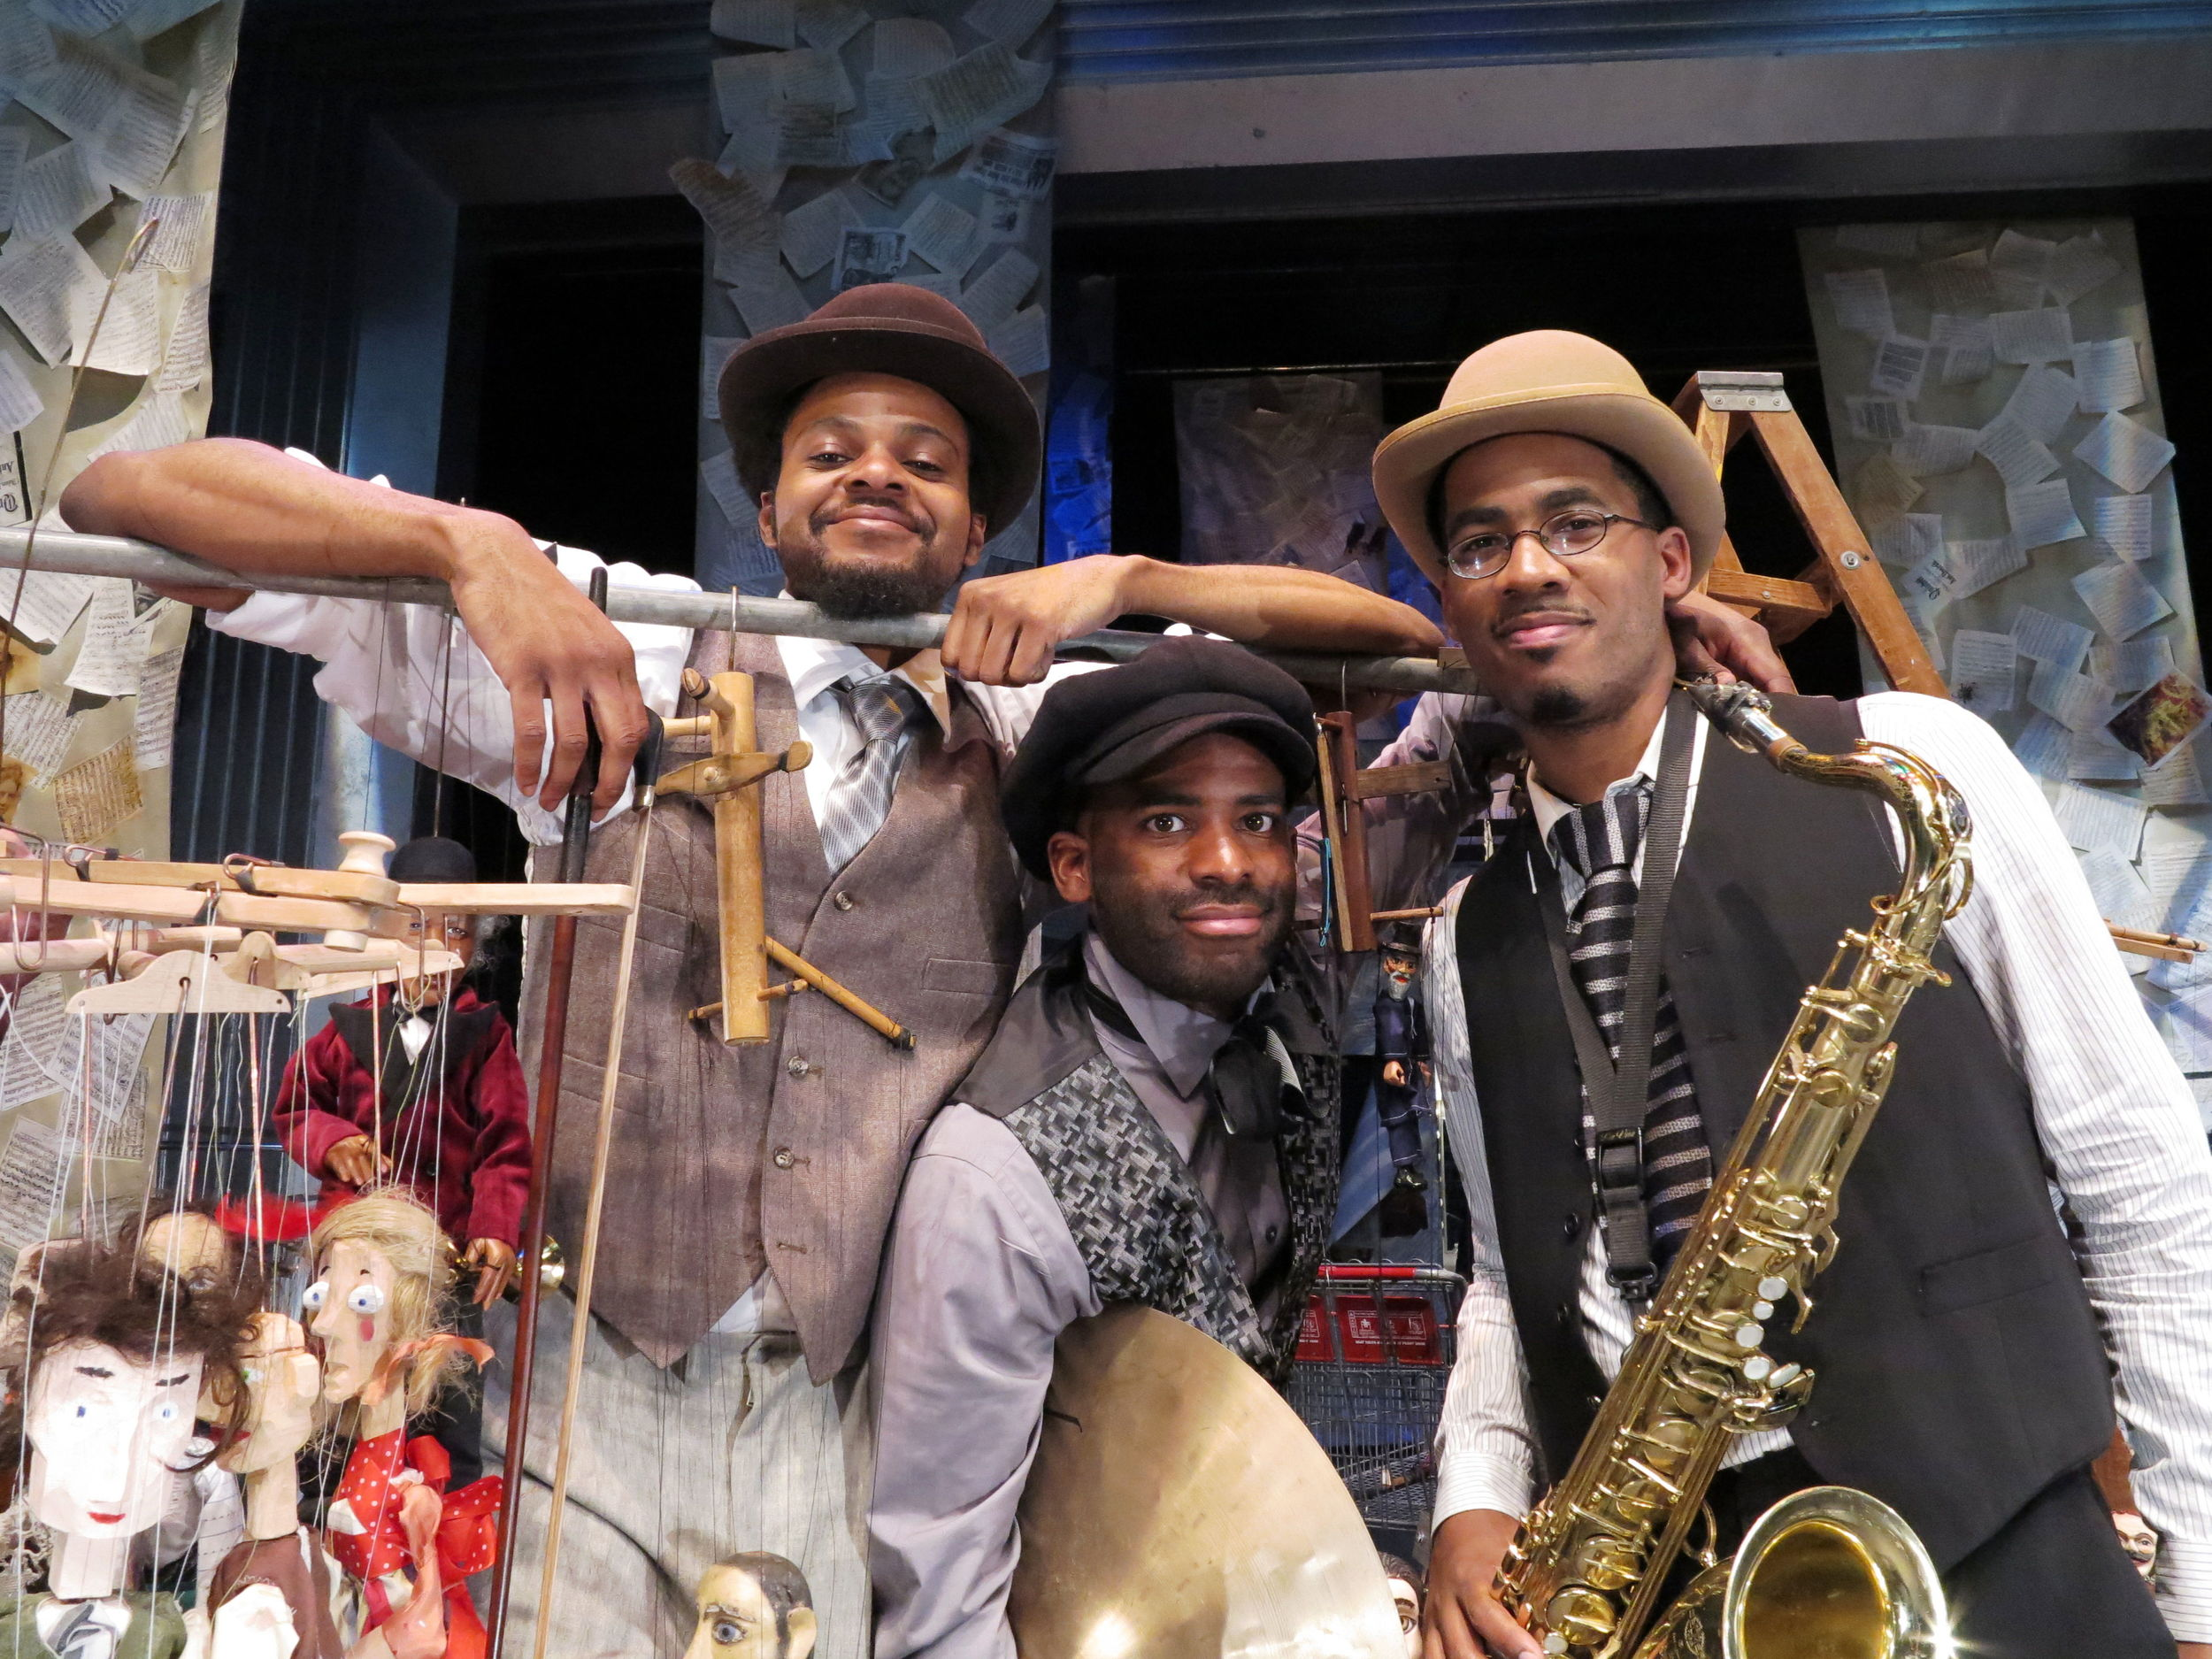 Luke Stewart (Bass), Warren Trae Crudup III (Percussion), James Brandon Lewis (Musical Director, Saxophone). Photo by Jonathan Slaff